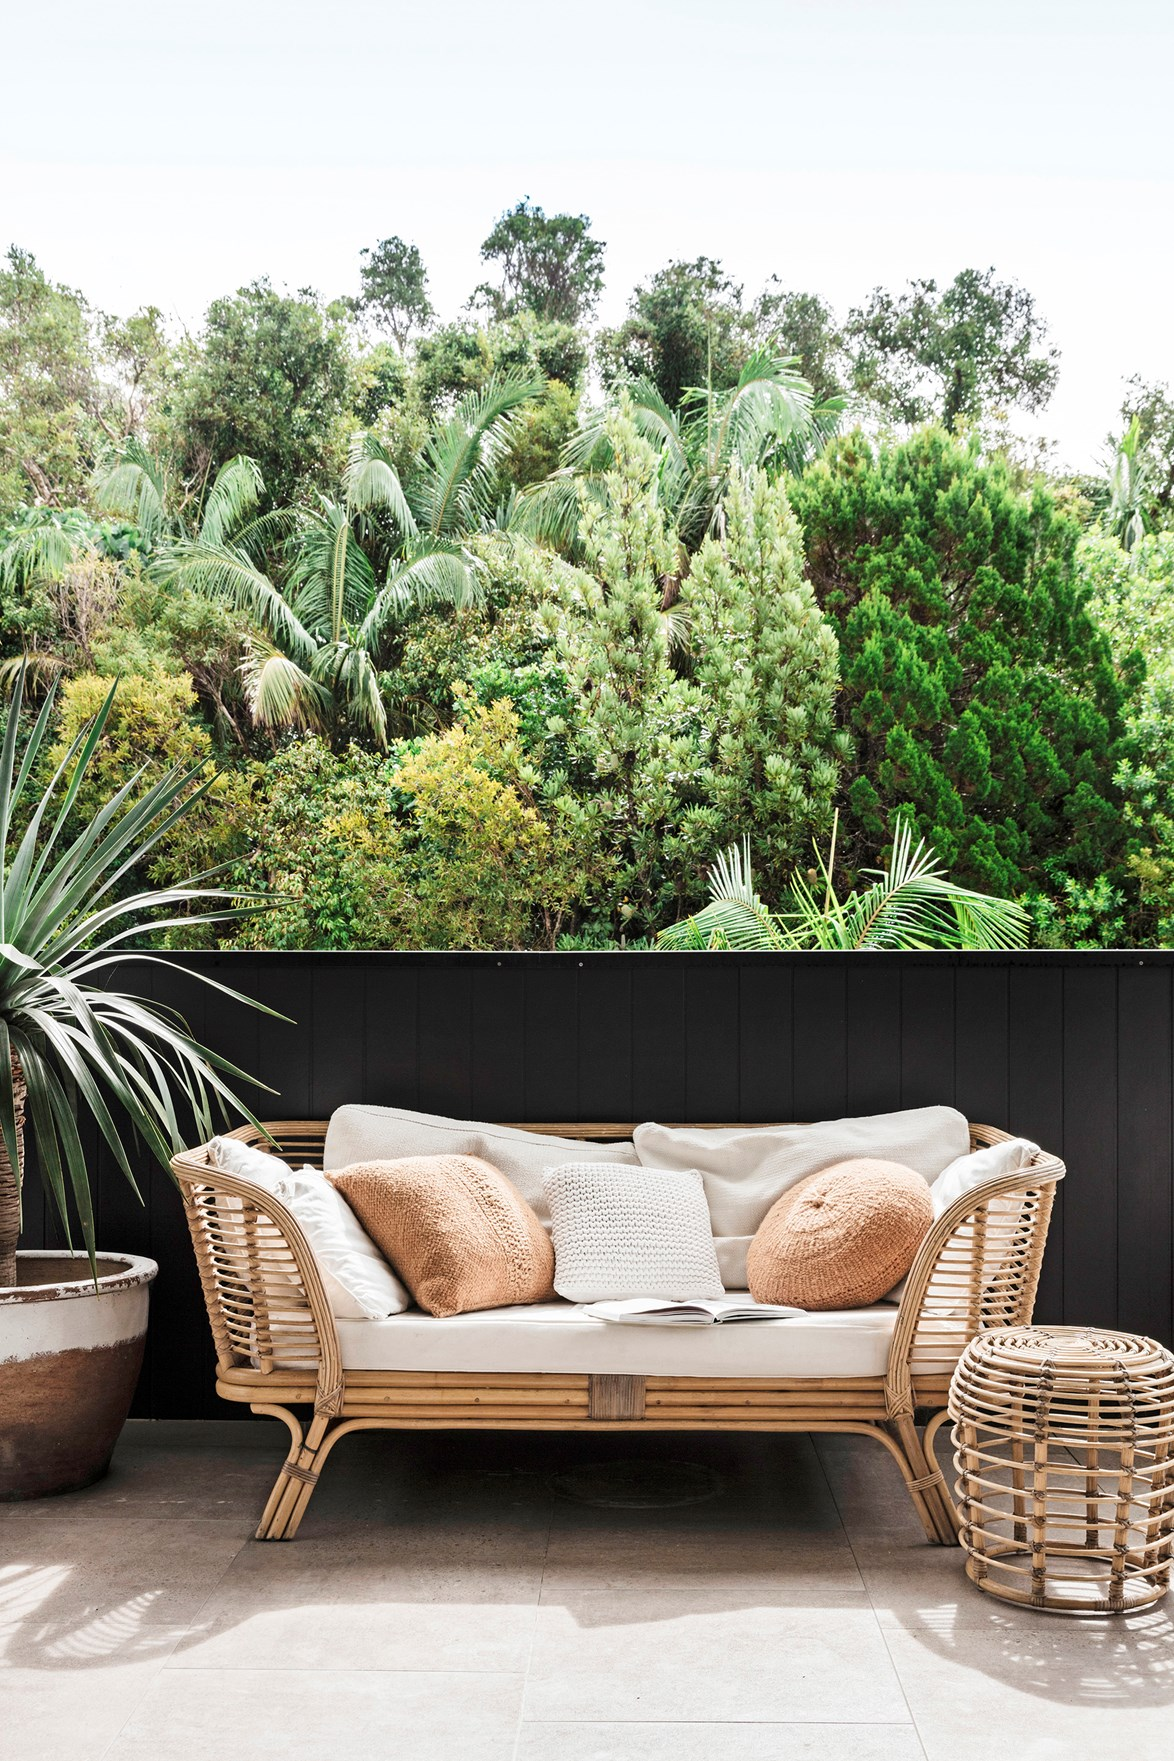 "**Invest in comfortable outdoor furniture**<br> A cosy [outdoor lounge chair](https://www.homestolove.com.au/best-outdoor-lounge-chairs-2633|target=""_blank"") or daybed encourages a sense of togetherness at home, even if you're each doing your own thing when sitting there. And remember, the more comfortable the chairs, the more likely you are to venture outdoors and really unwind."